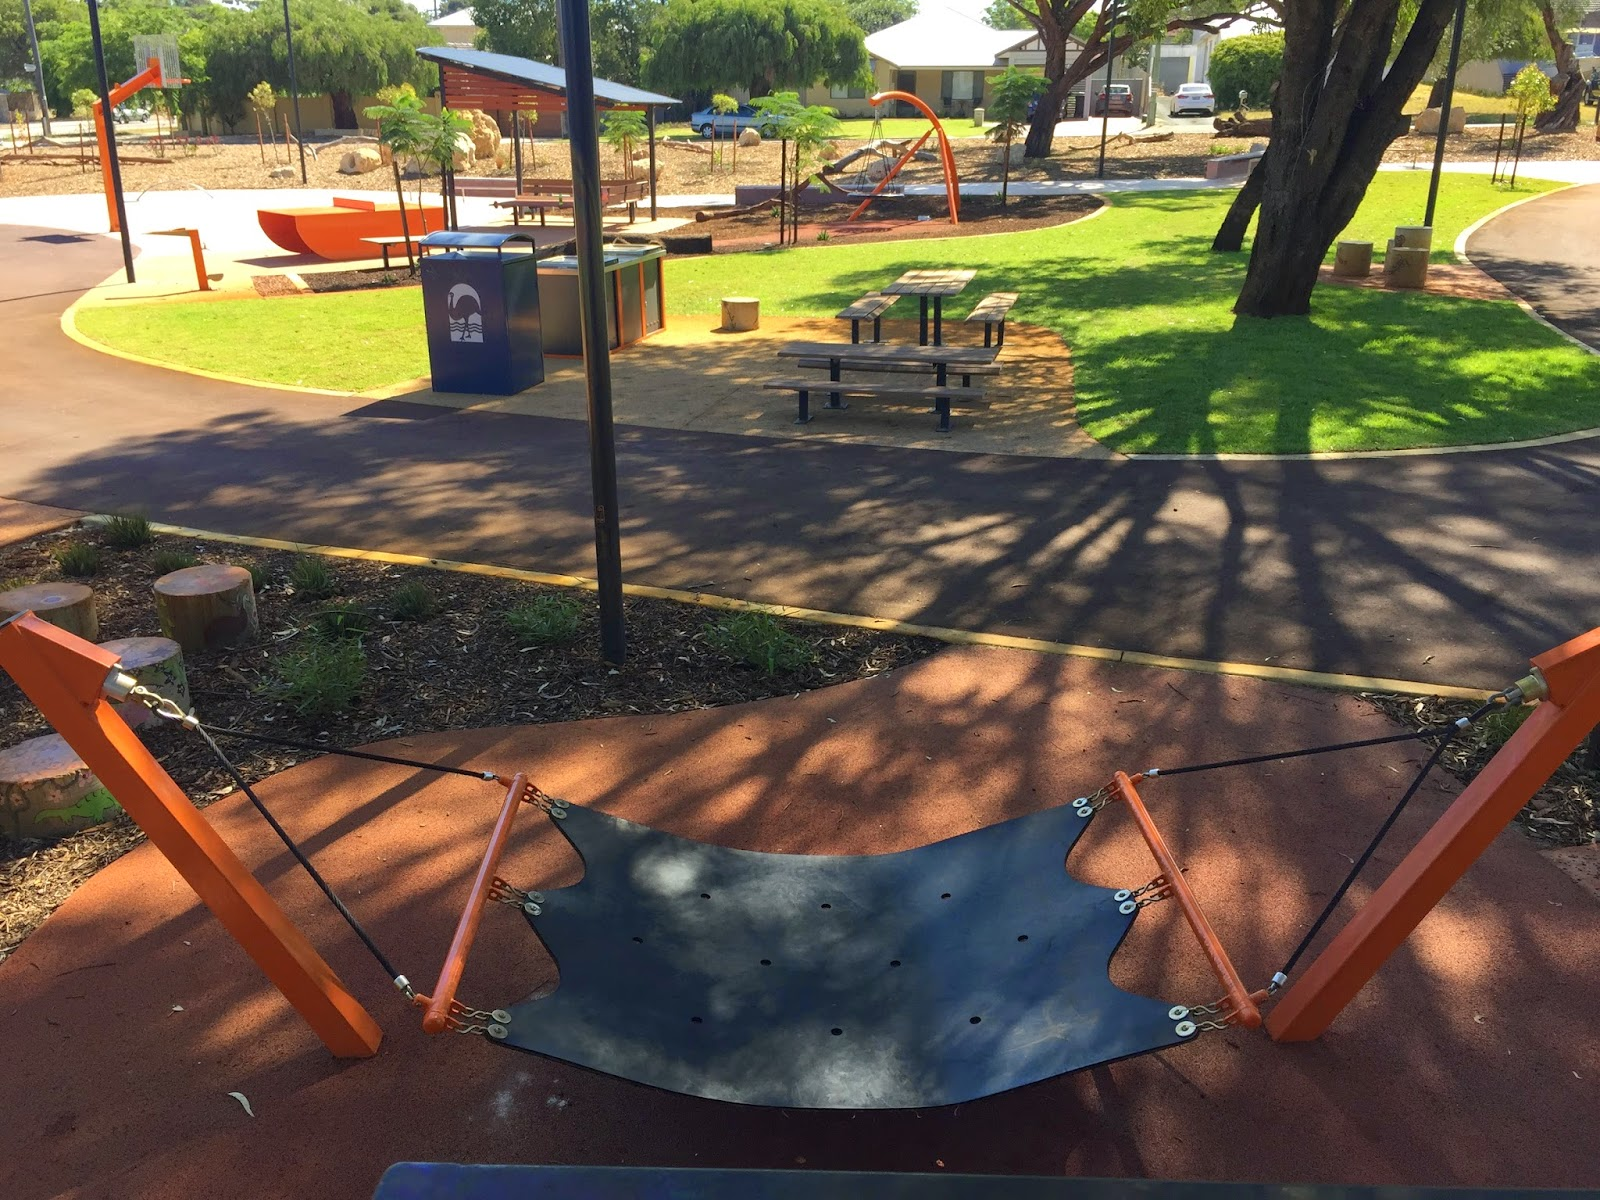 Basketball System Perth Carawatha Park Willagee Out And About In Perth With Bub